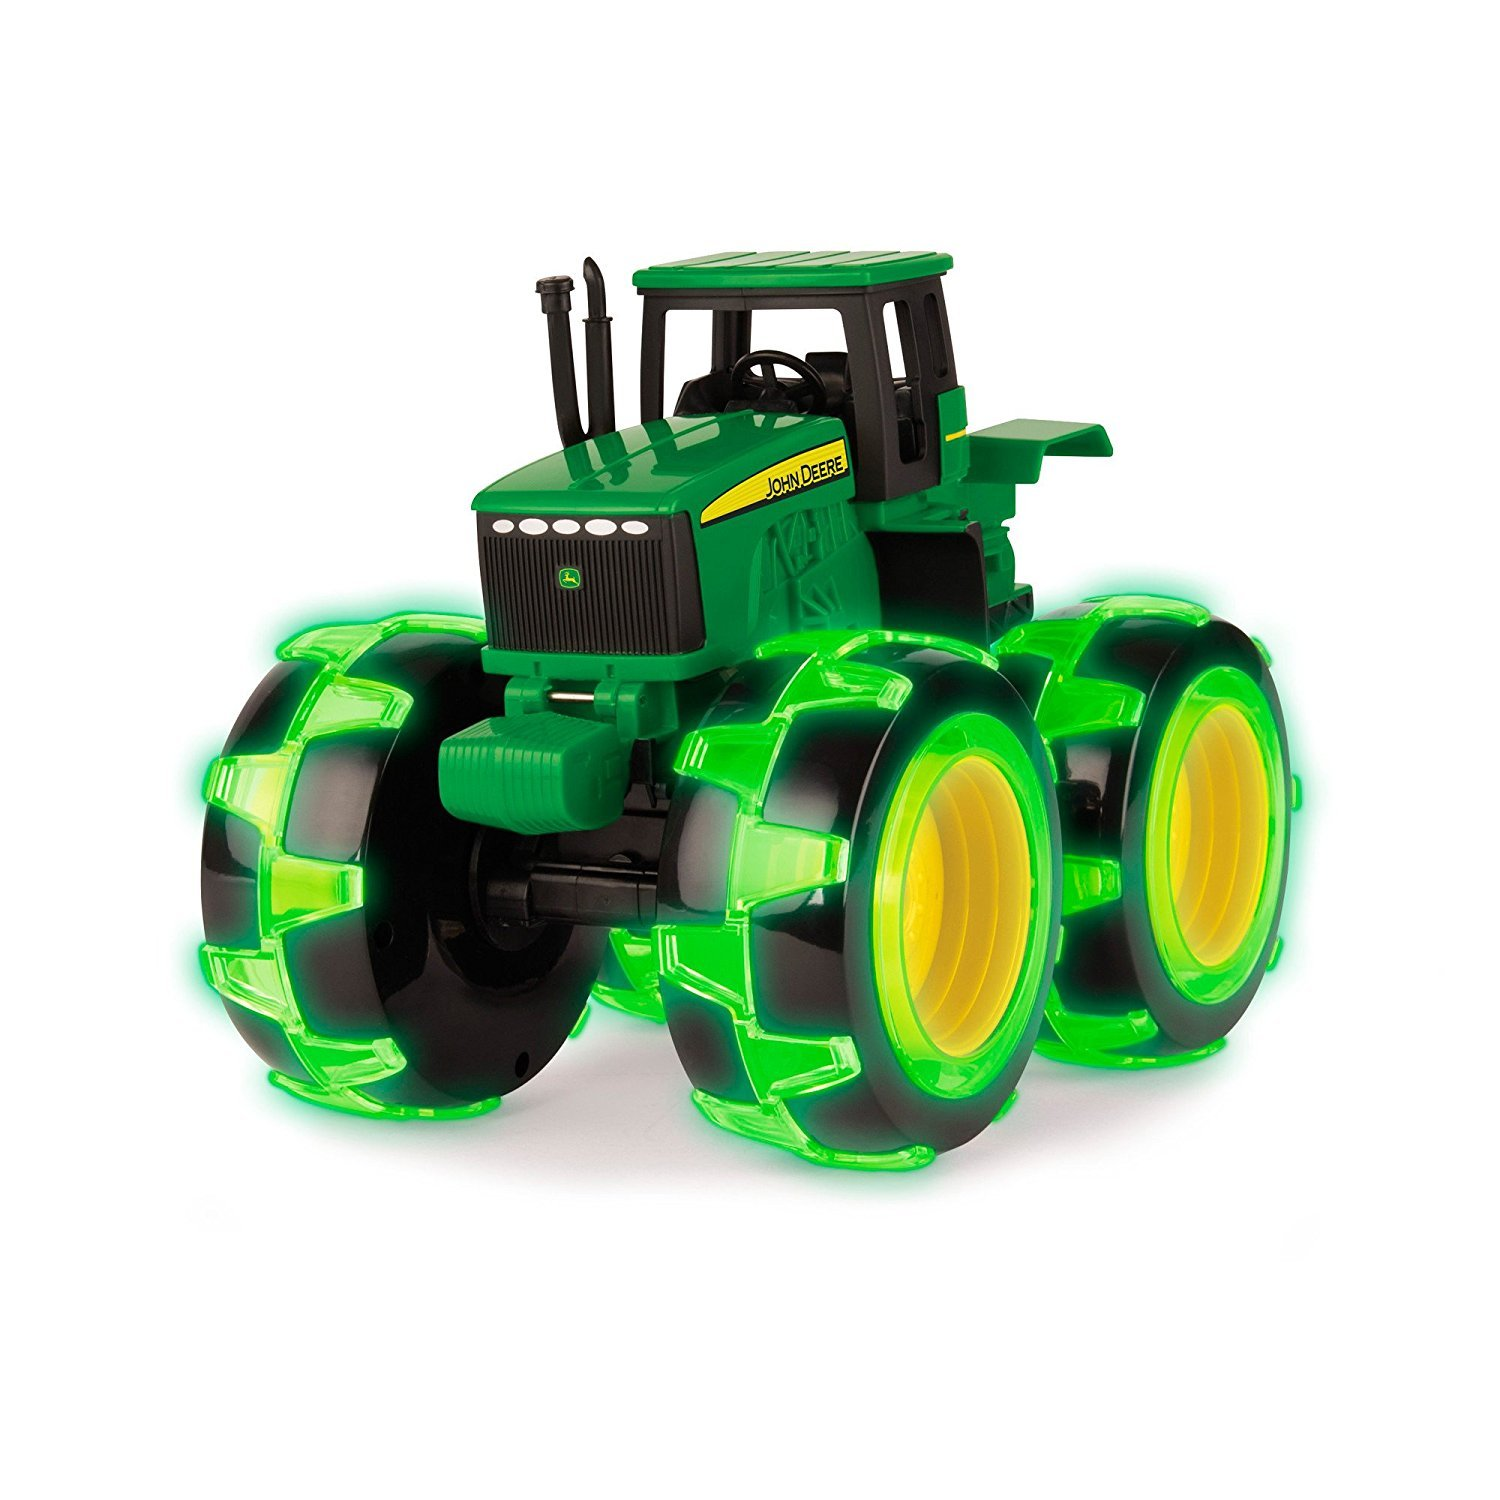 John Deere - Monster Treads Light Wheels Tractor (15-46434)